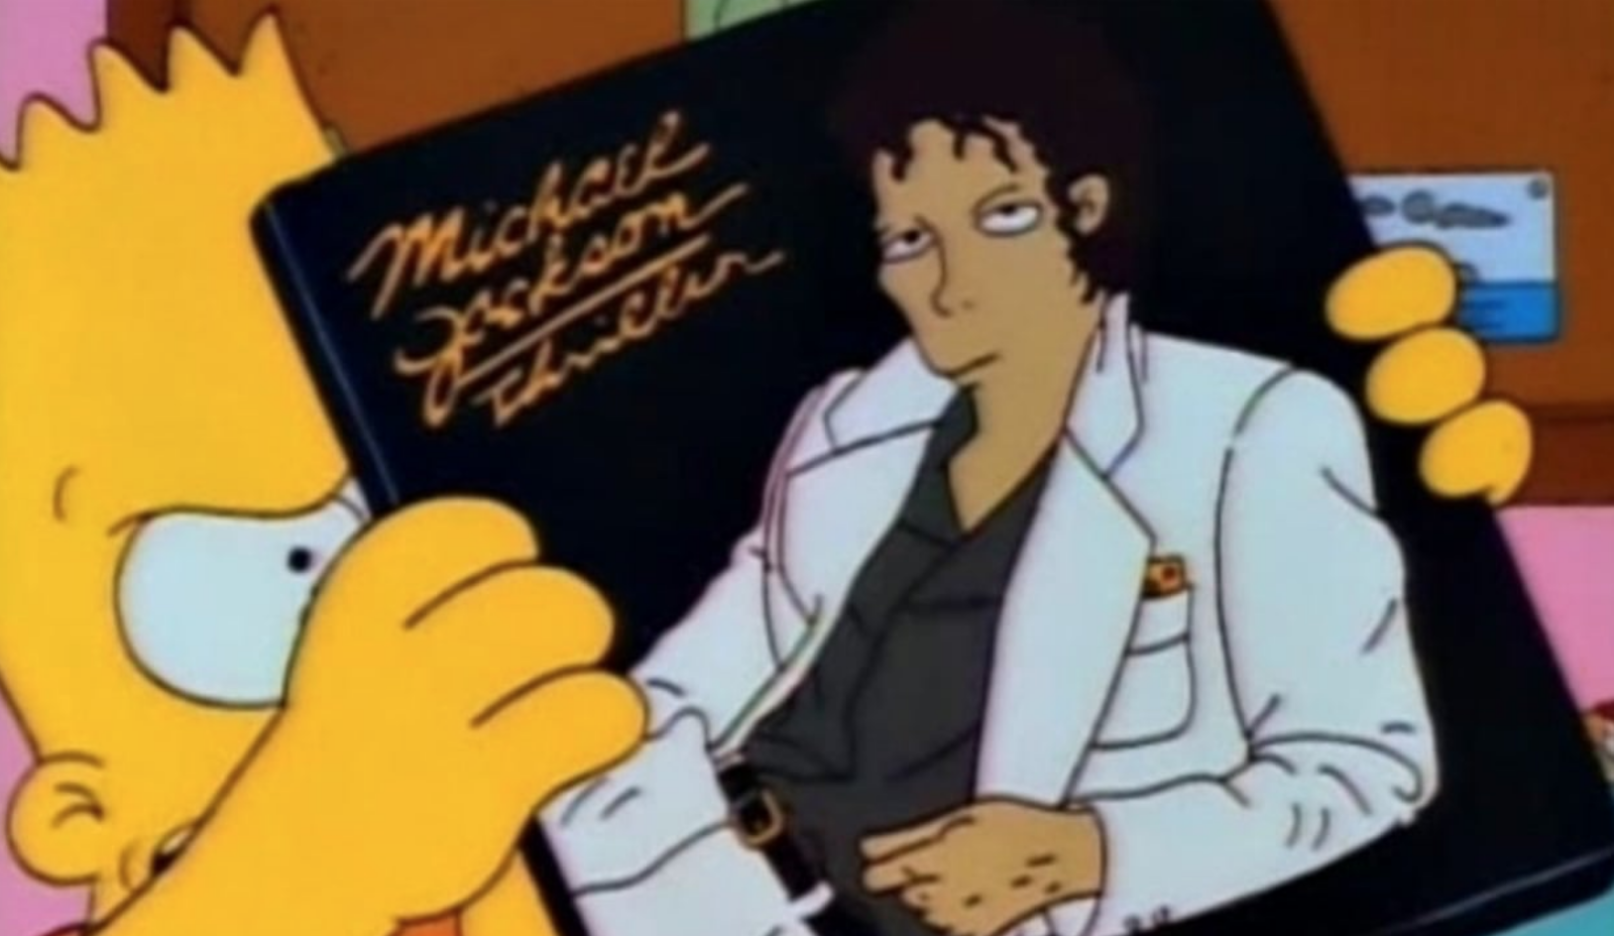 'The Simpsons' Pulls Michael Jackson Episode Following 'Neverland' Doc